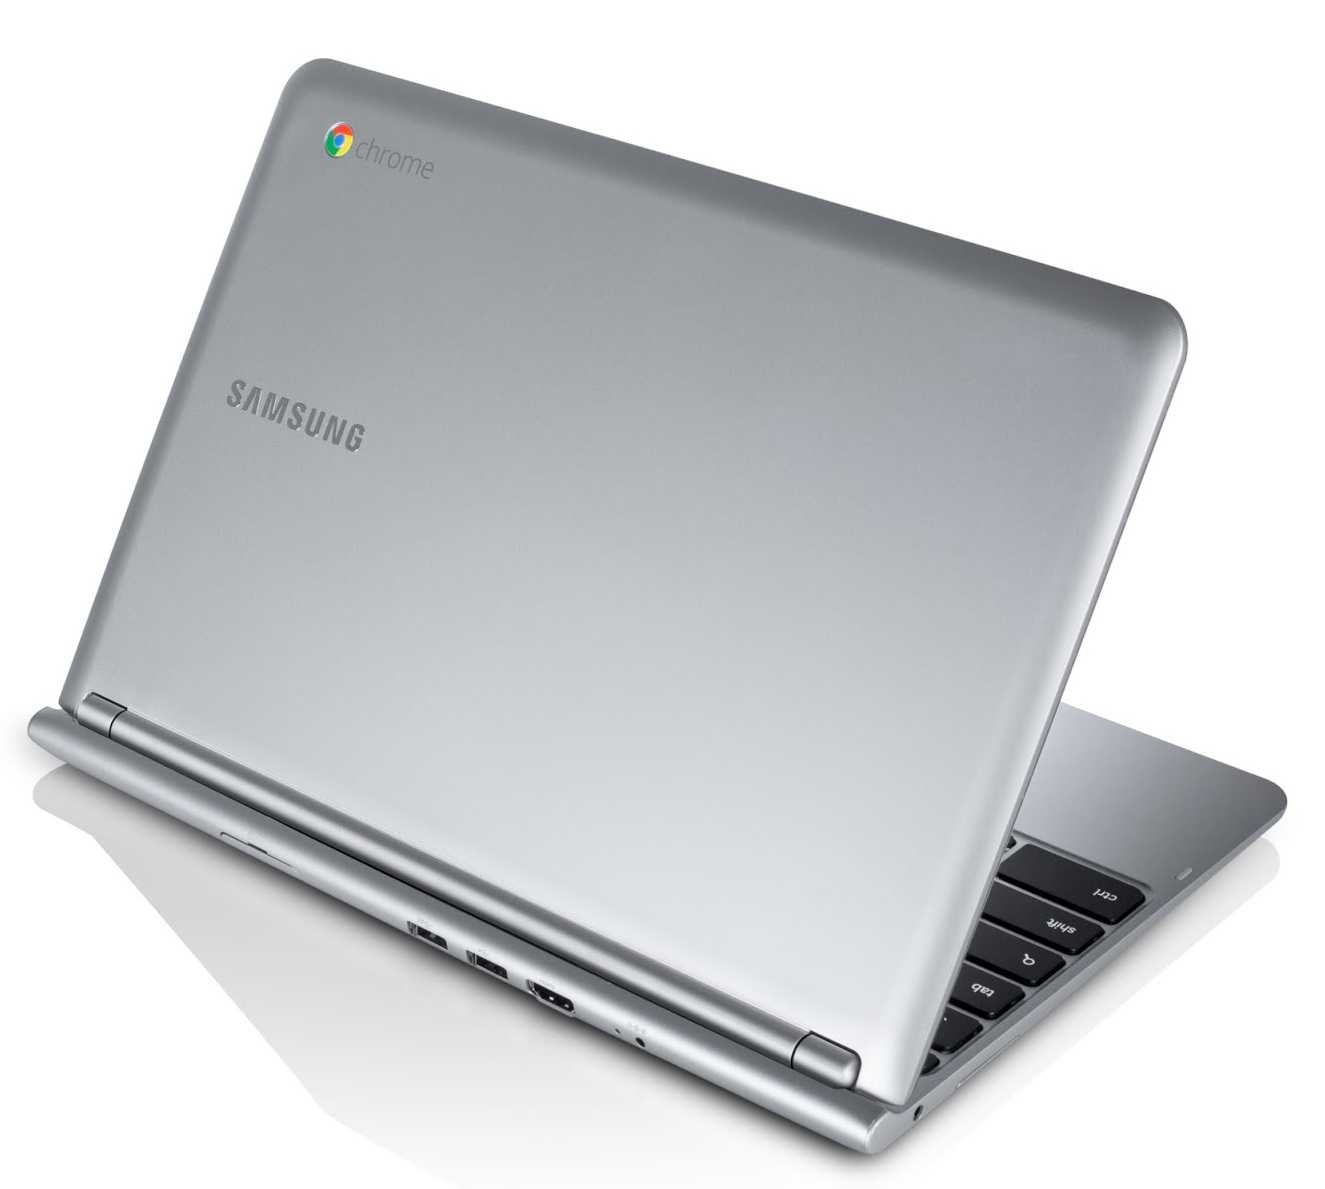 Samsung working on a new Chromebook, might be called Nautilus